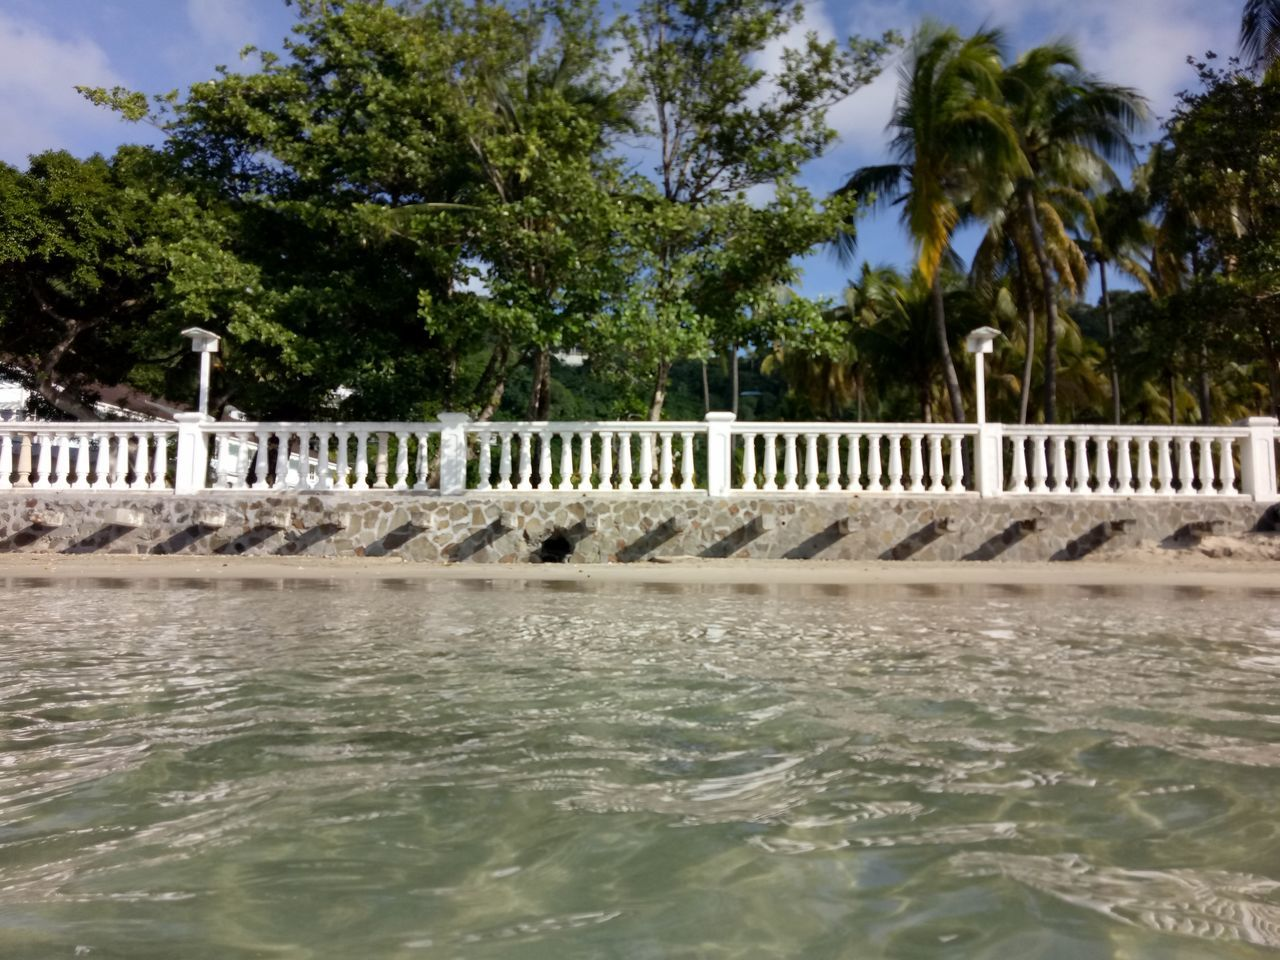 Baech Tree Water Waterfront Outdoors Palm Tree No People Nature Day Sea Sky Bridge - Man Made Structure Architecture Beauty In Nature Hydroelectric Power